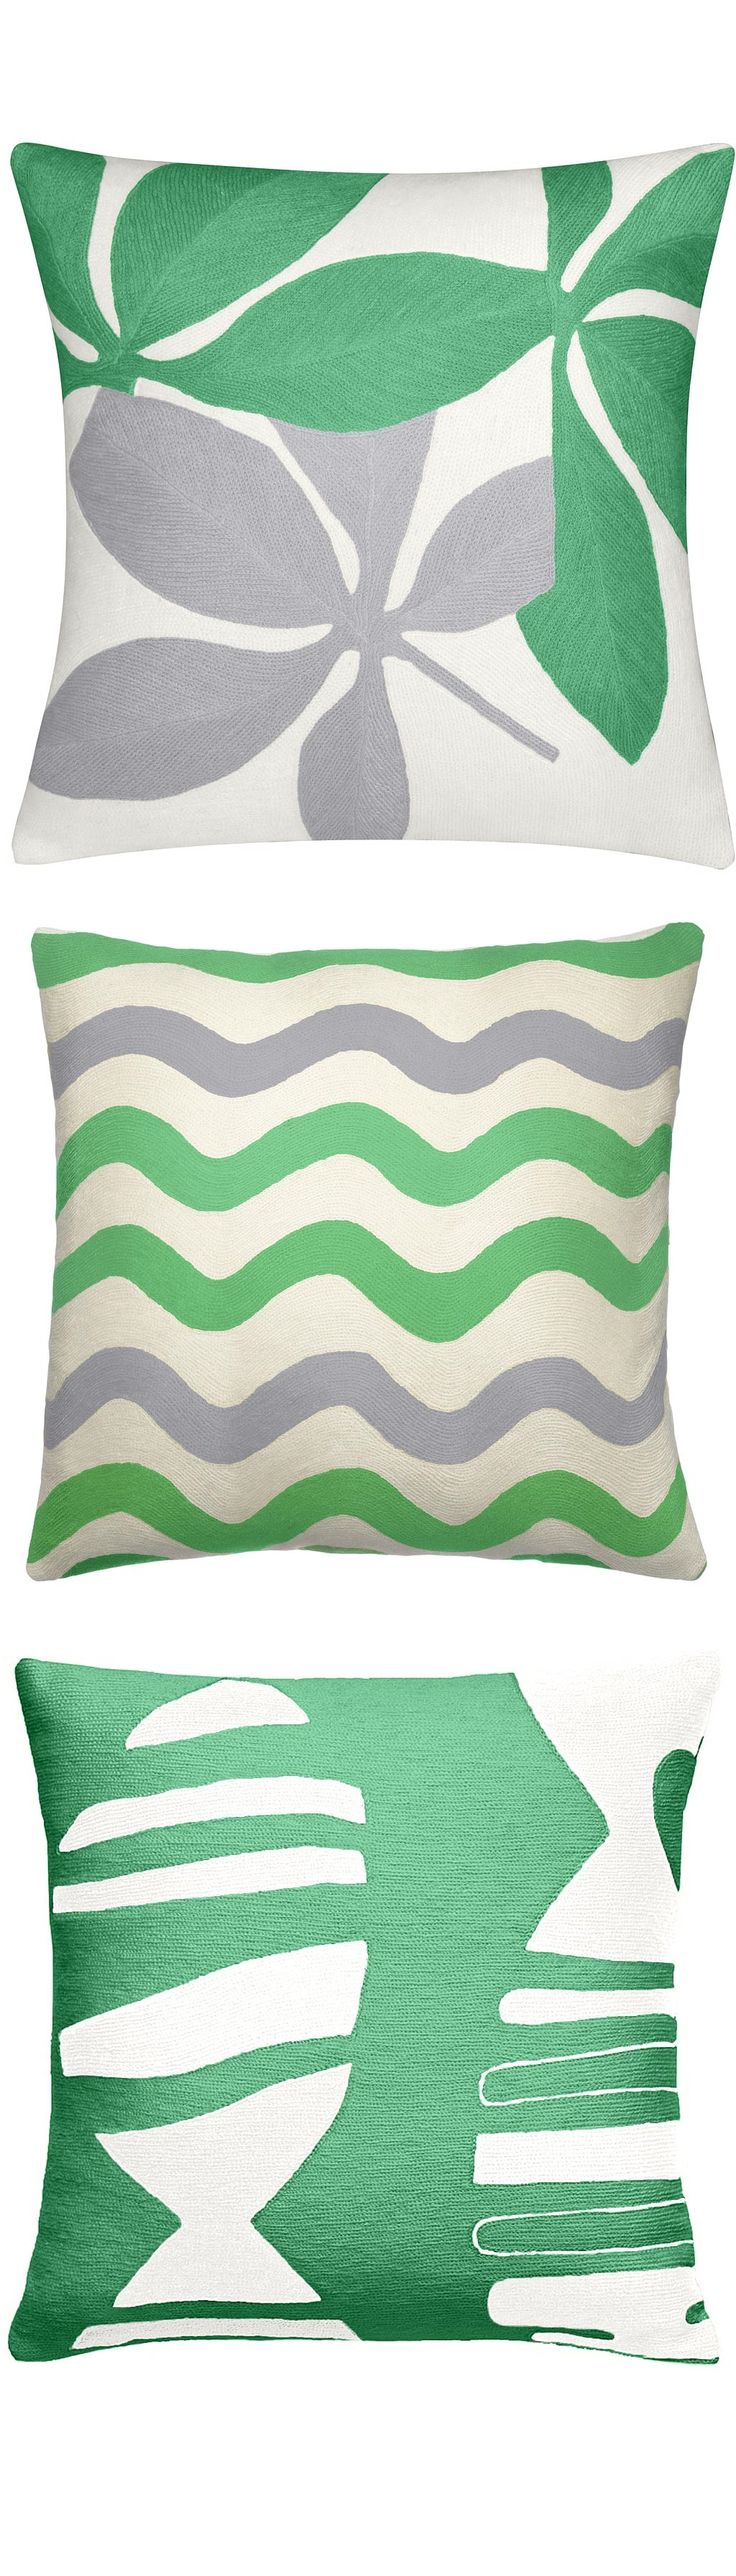 Modern Green Pillow : 17 Best images about Green Pillows on Pinterest Green pillow covers, Cushions and Pinterest pin